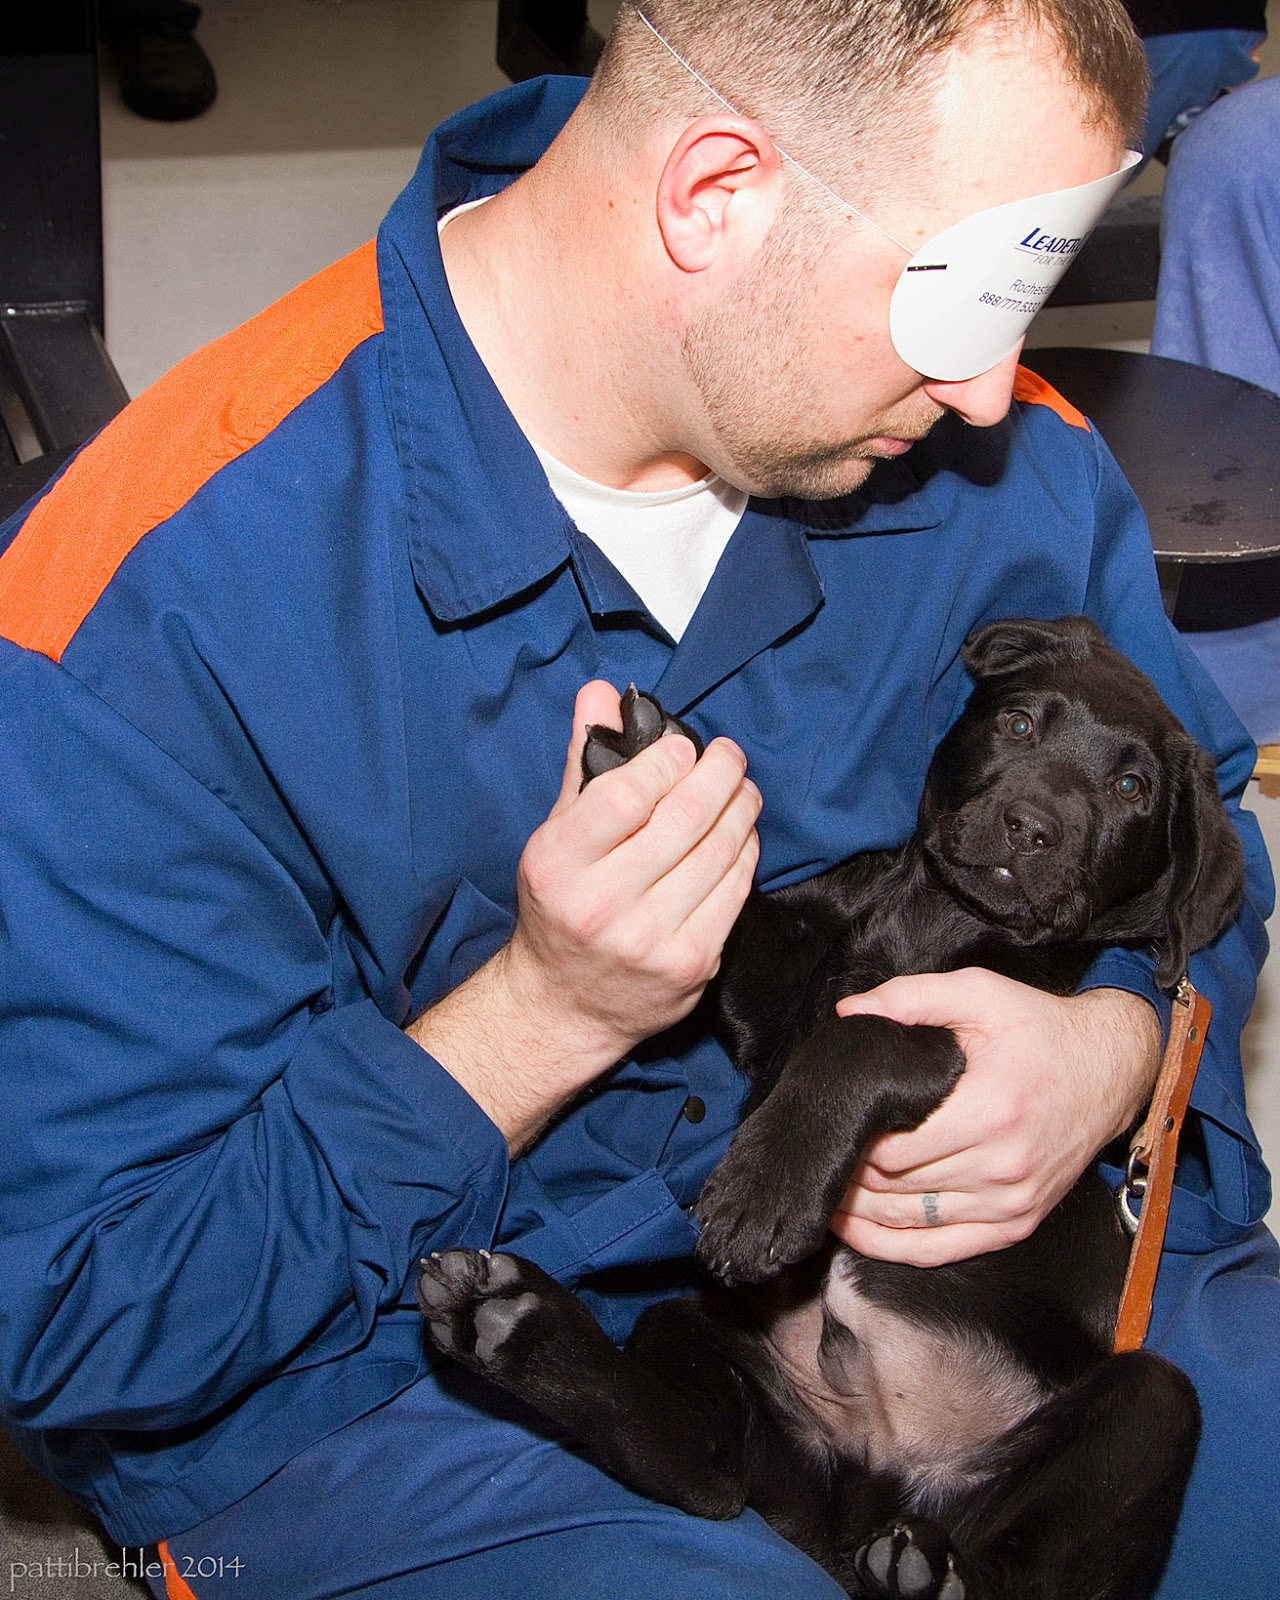 A man dressed in the blue prison uniform is cradling a small black lab puppy on its back in his lap. The man is blindfolded, he is holding the puppy's right front paw with his right hand and supporting the puppy with his left hand. The puppy is looking at the camera.